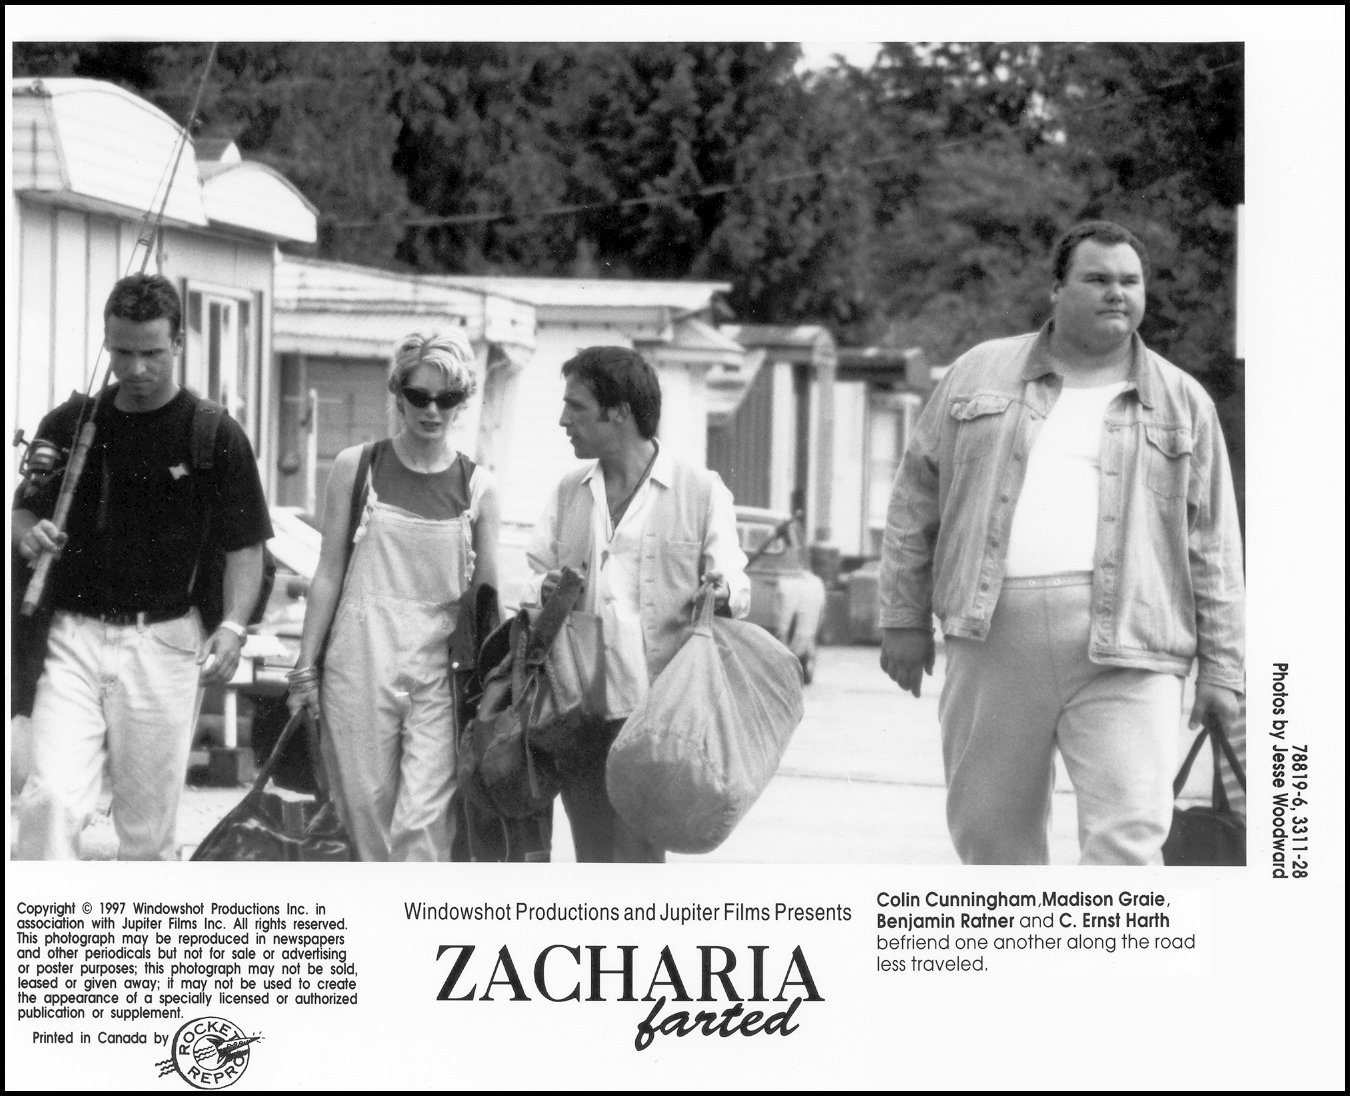 C. Ernst Harth, Colin Cunningham, Madison Graie, and Benjamin Ratner in Zacharia Farted (1998)